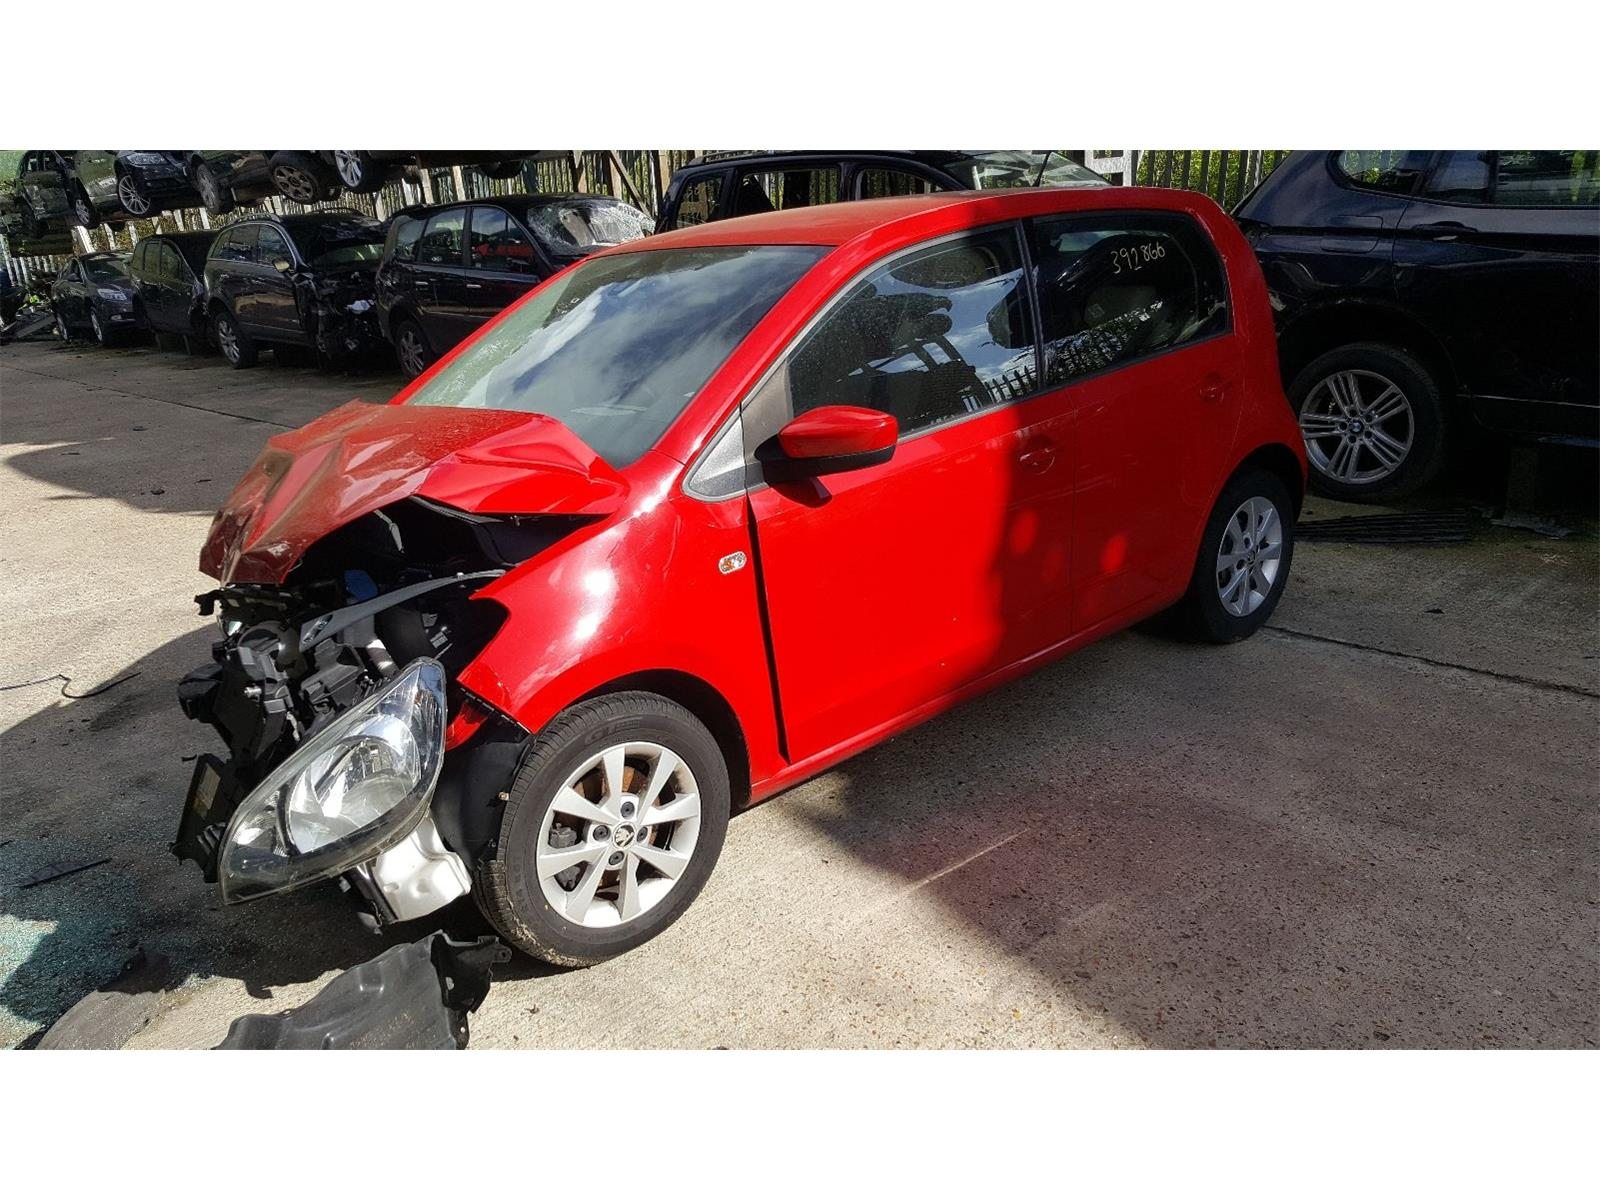 Skoda Citigo 2012 To 2017 Elegance Greentech 5 Door Hatchback / scrap /  salvage car for sale / auction | Silverlake Autoparts